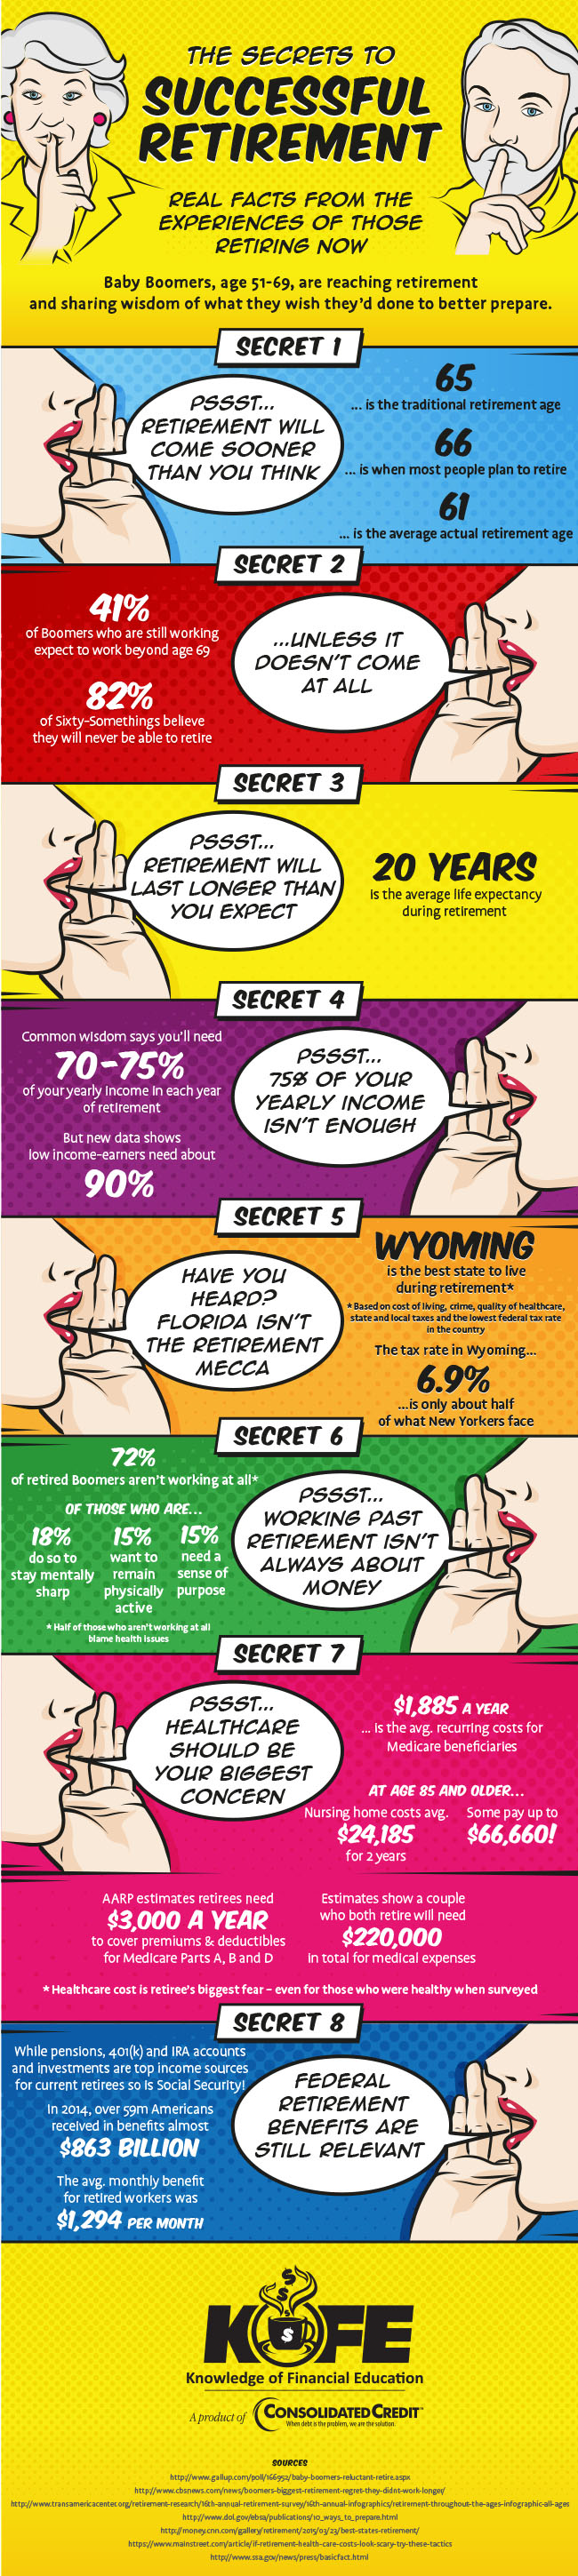 Secrets to a Successful Retirement infographic